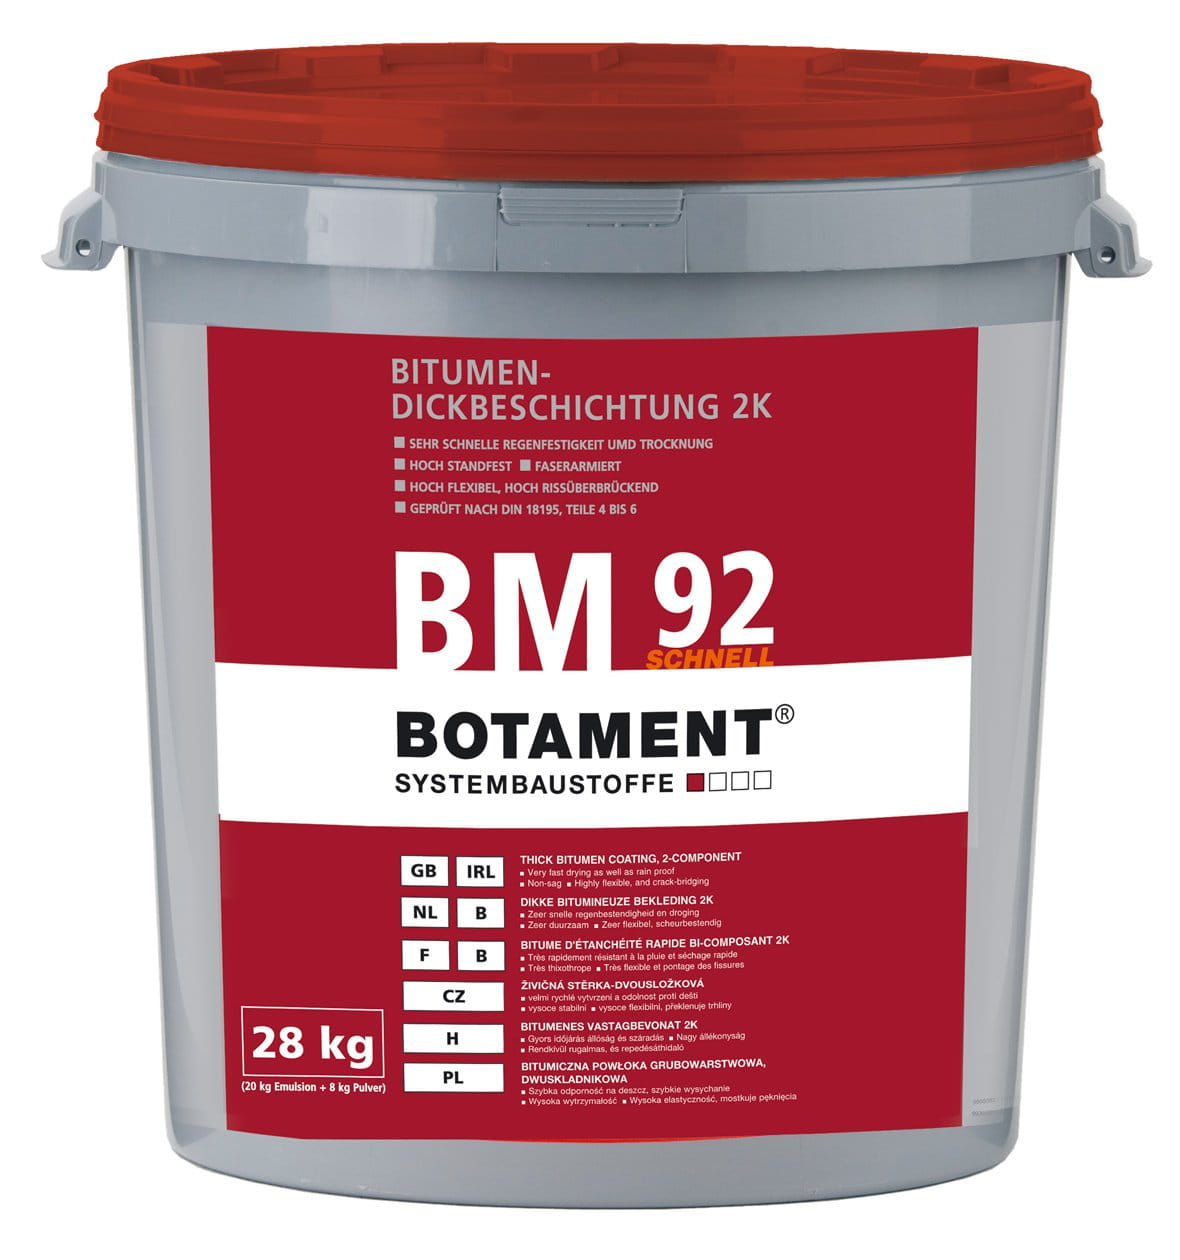 botement bm92